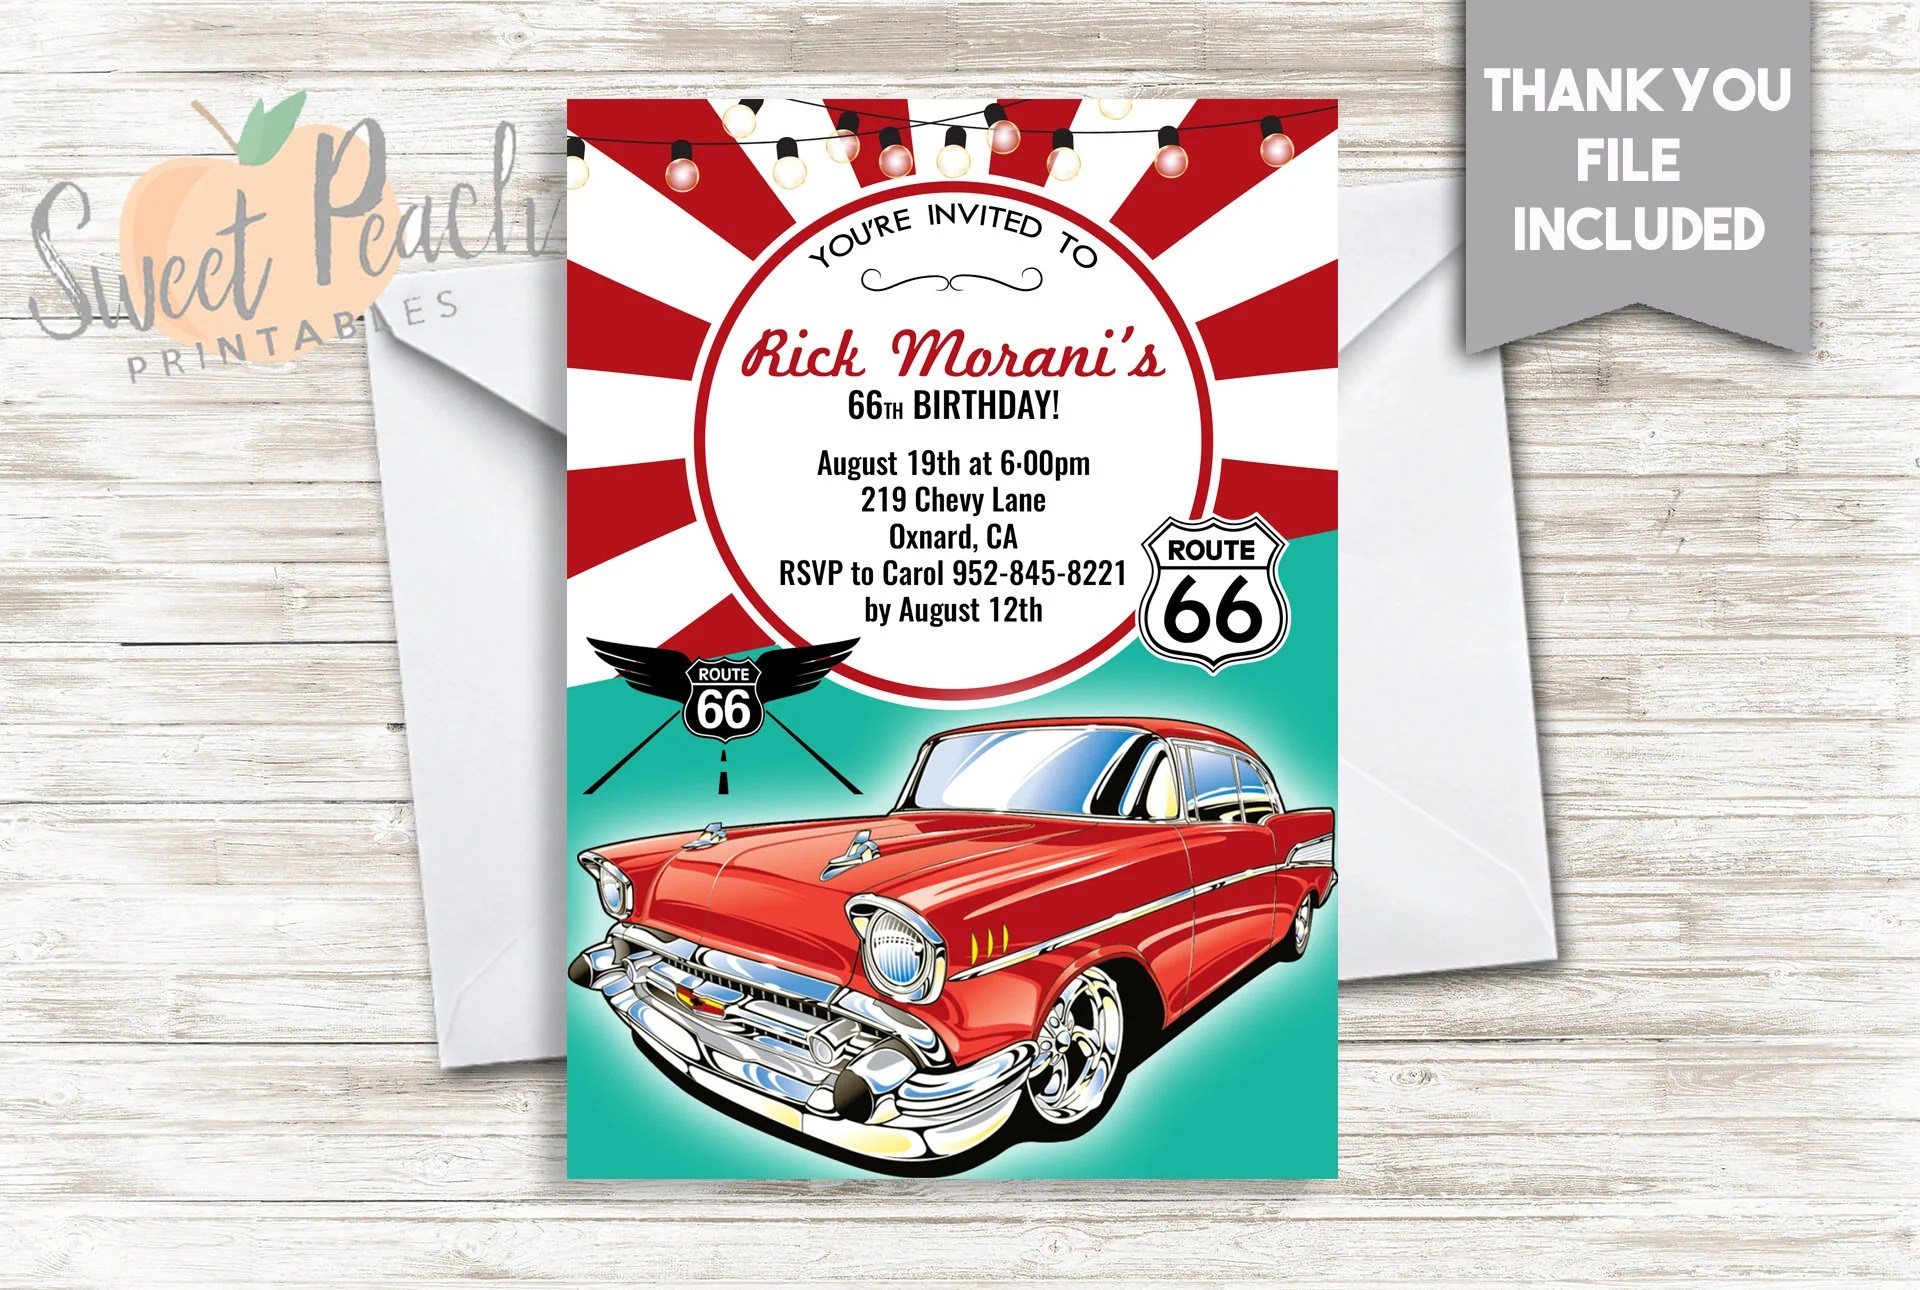 route 66 birthday invite 5x7 digital personalized classic car birthday invitation adult men man guy over the hill 147 0